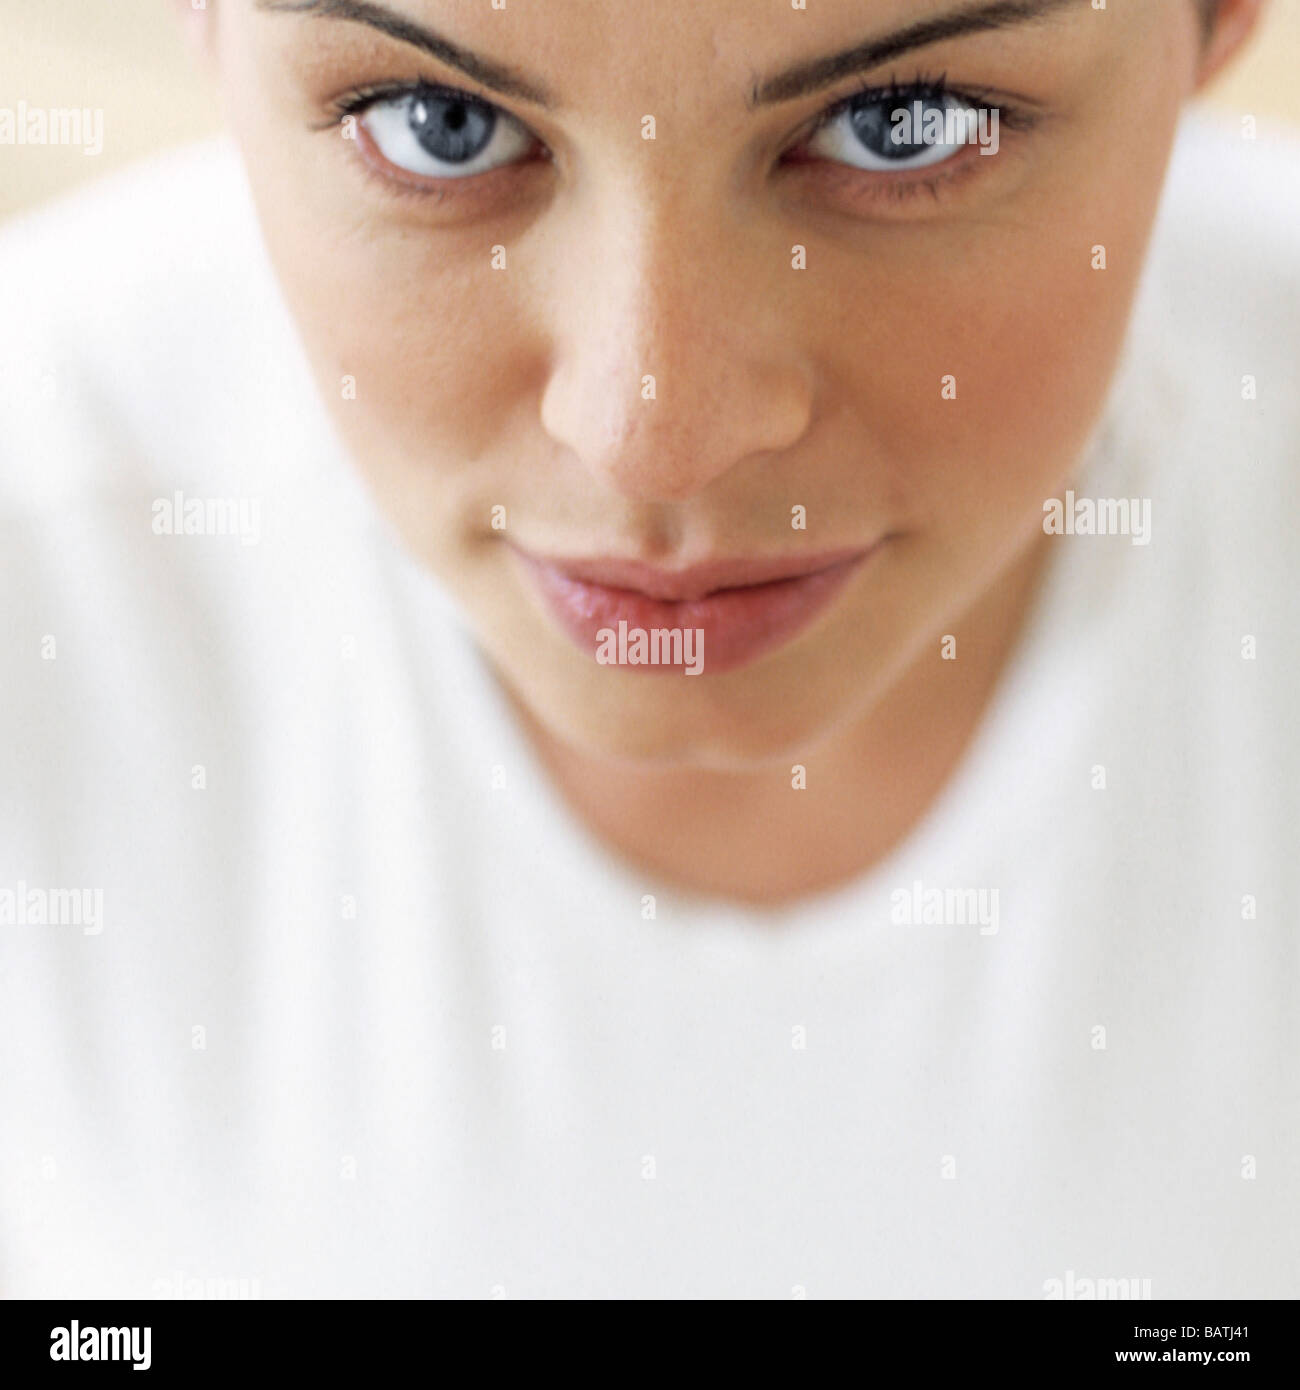 Close up portrait of a woman aged between 25 and 30 years. - Stock Image